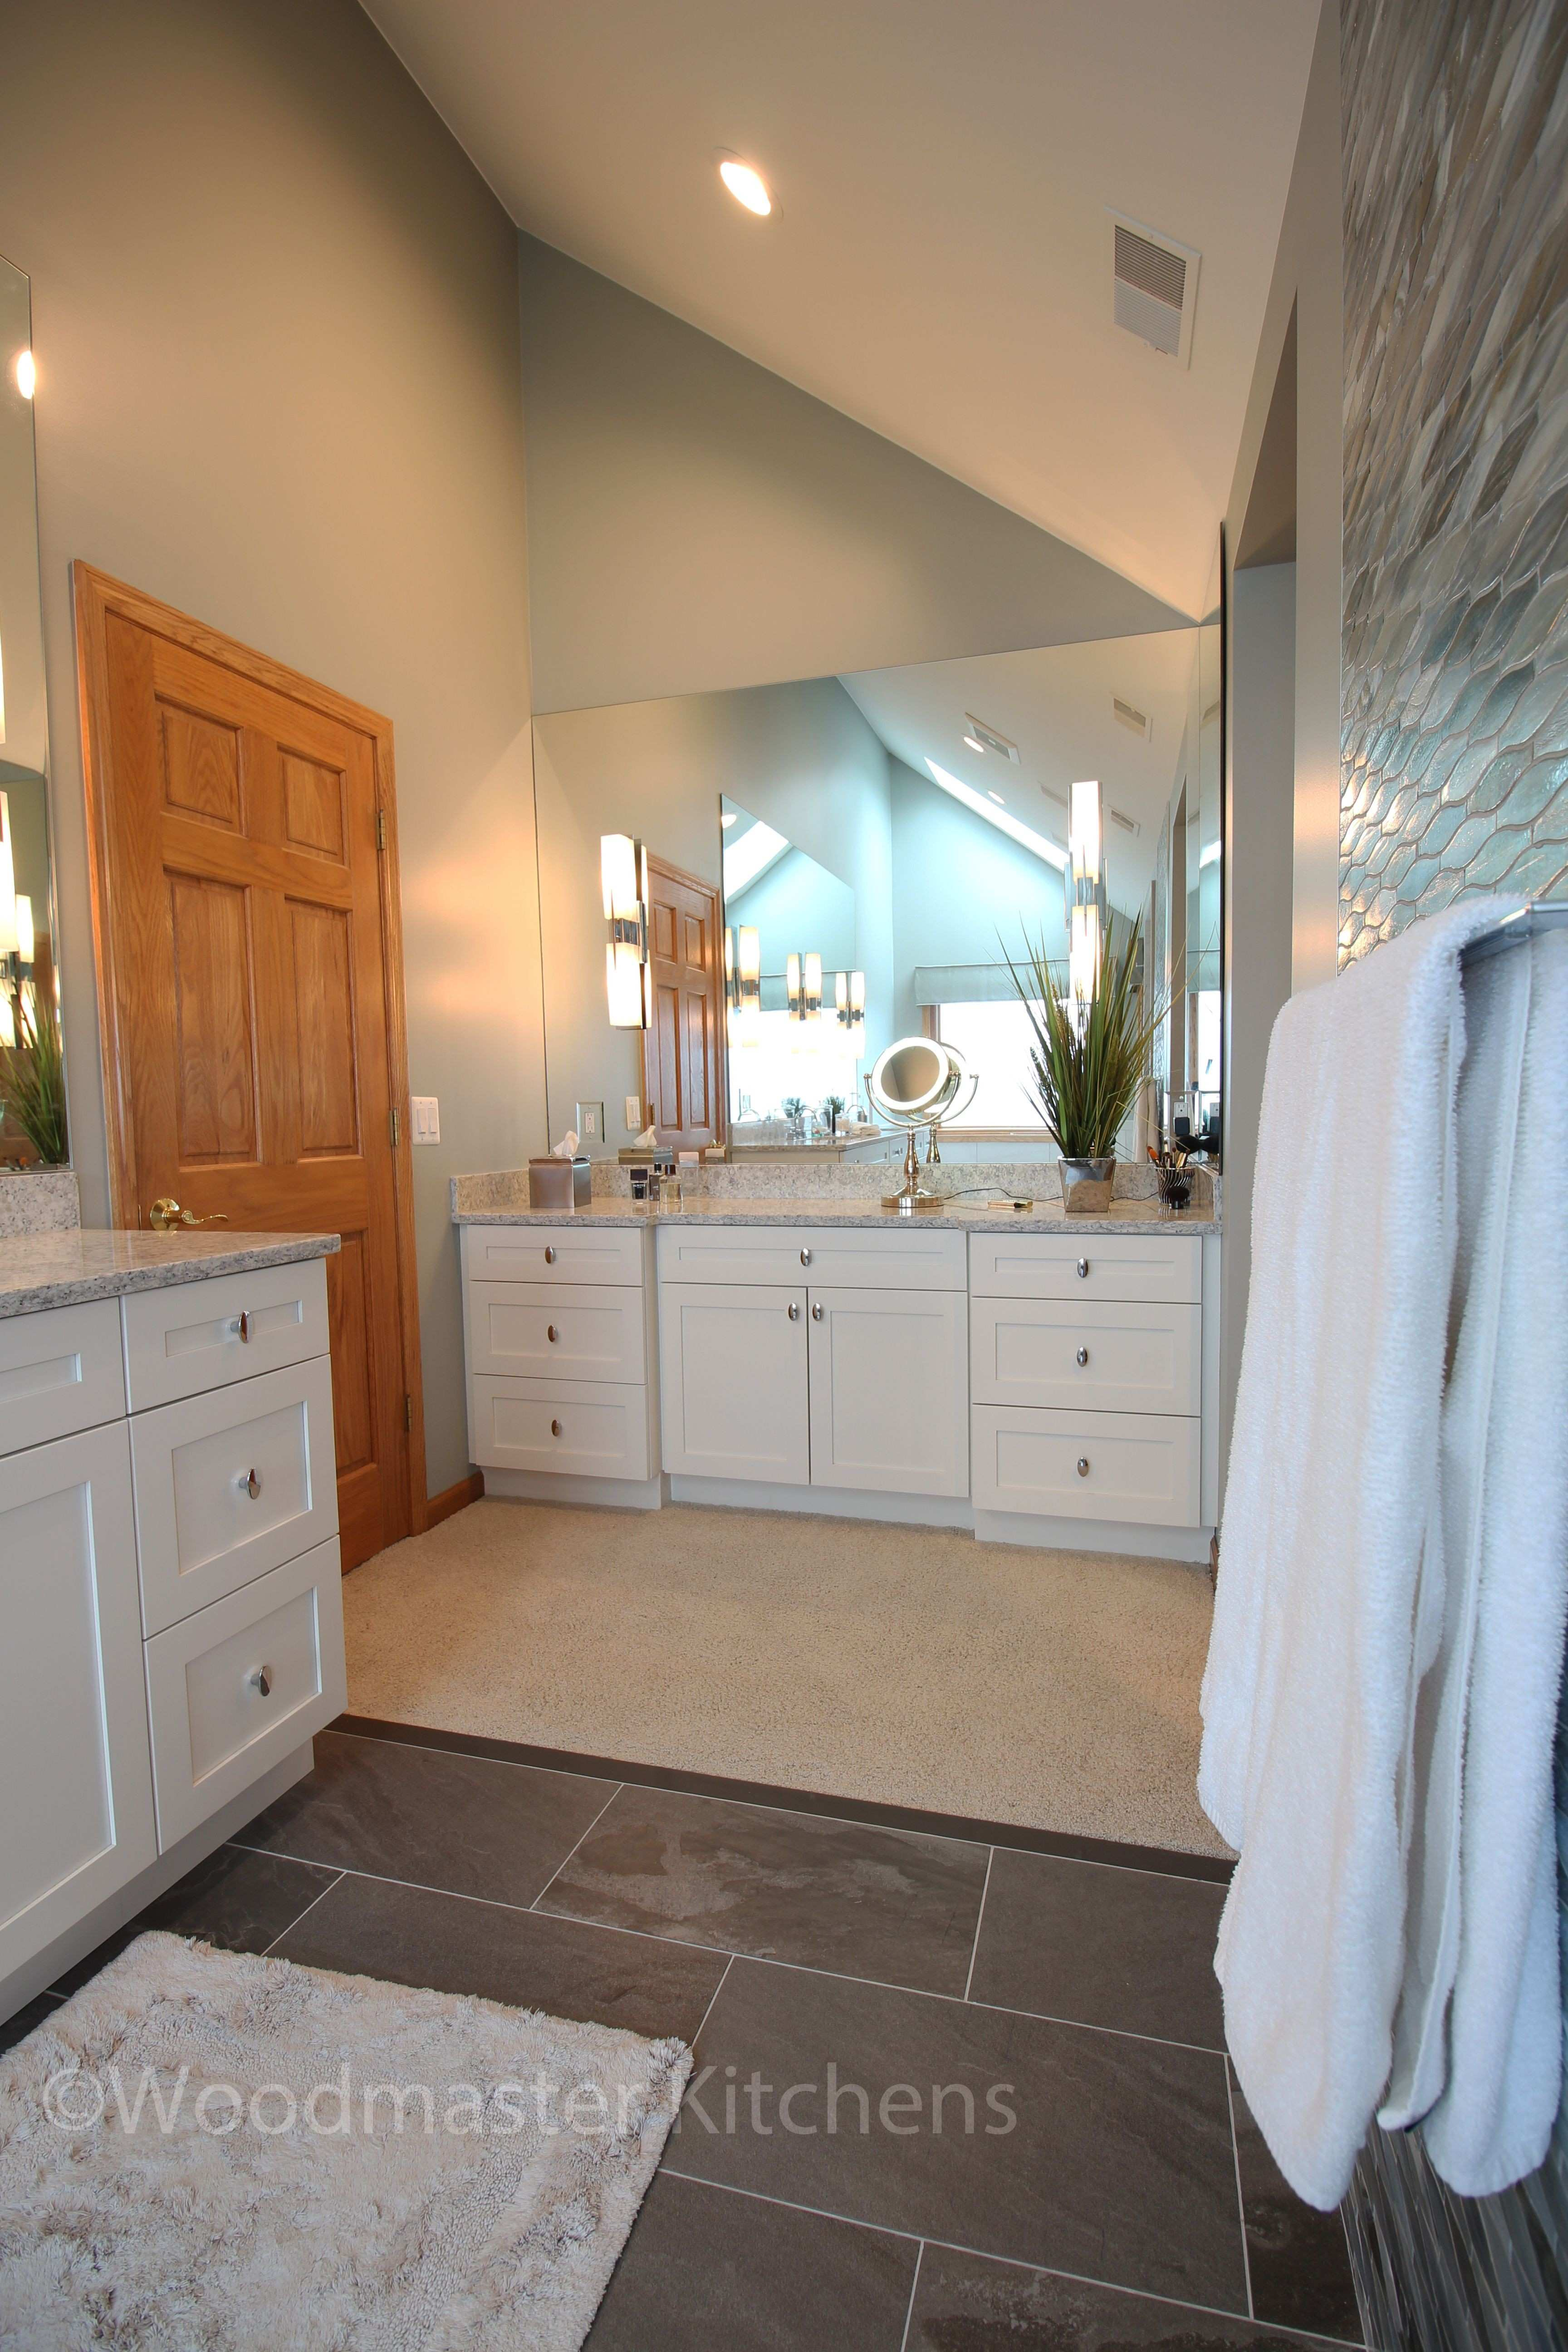 This contemporary bathroom design in Harrison Township maximizes the